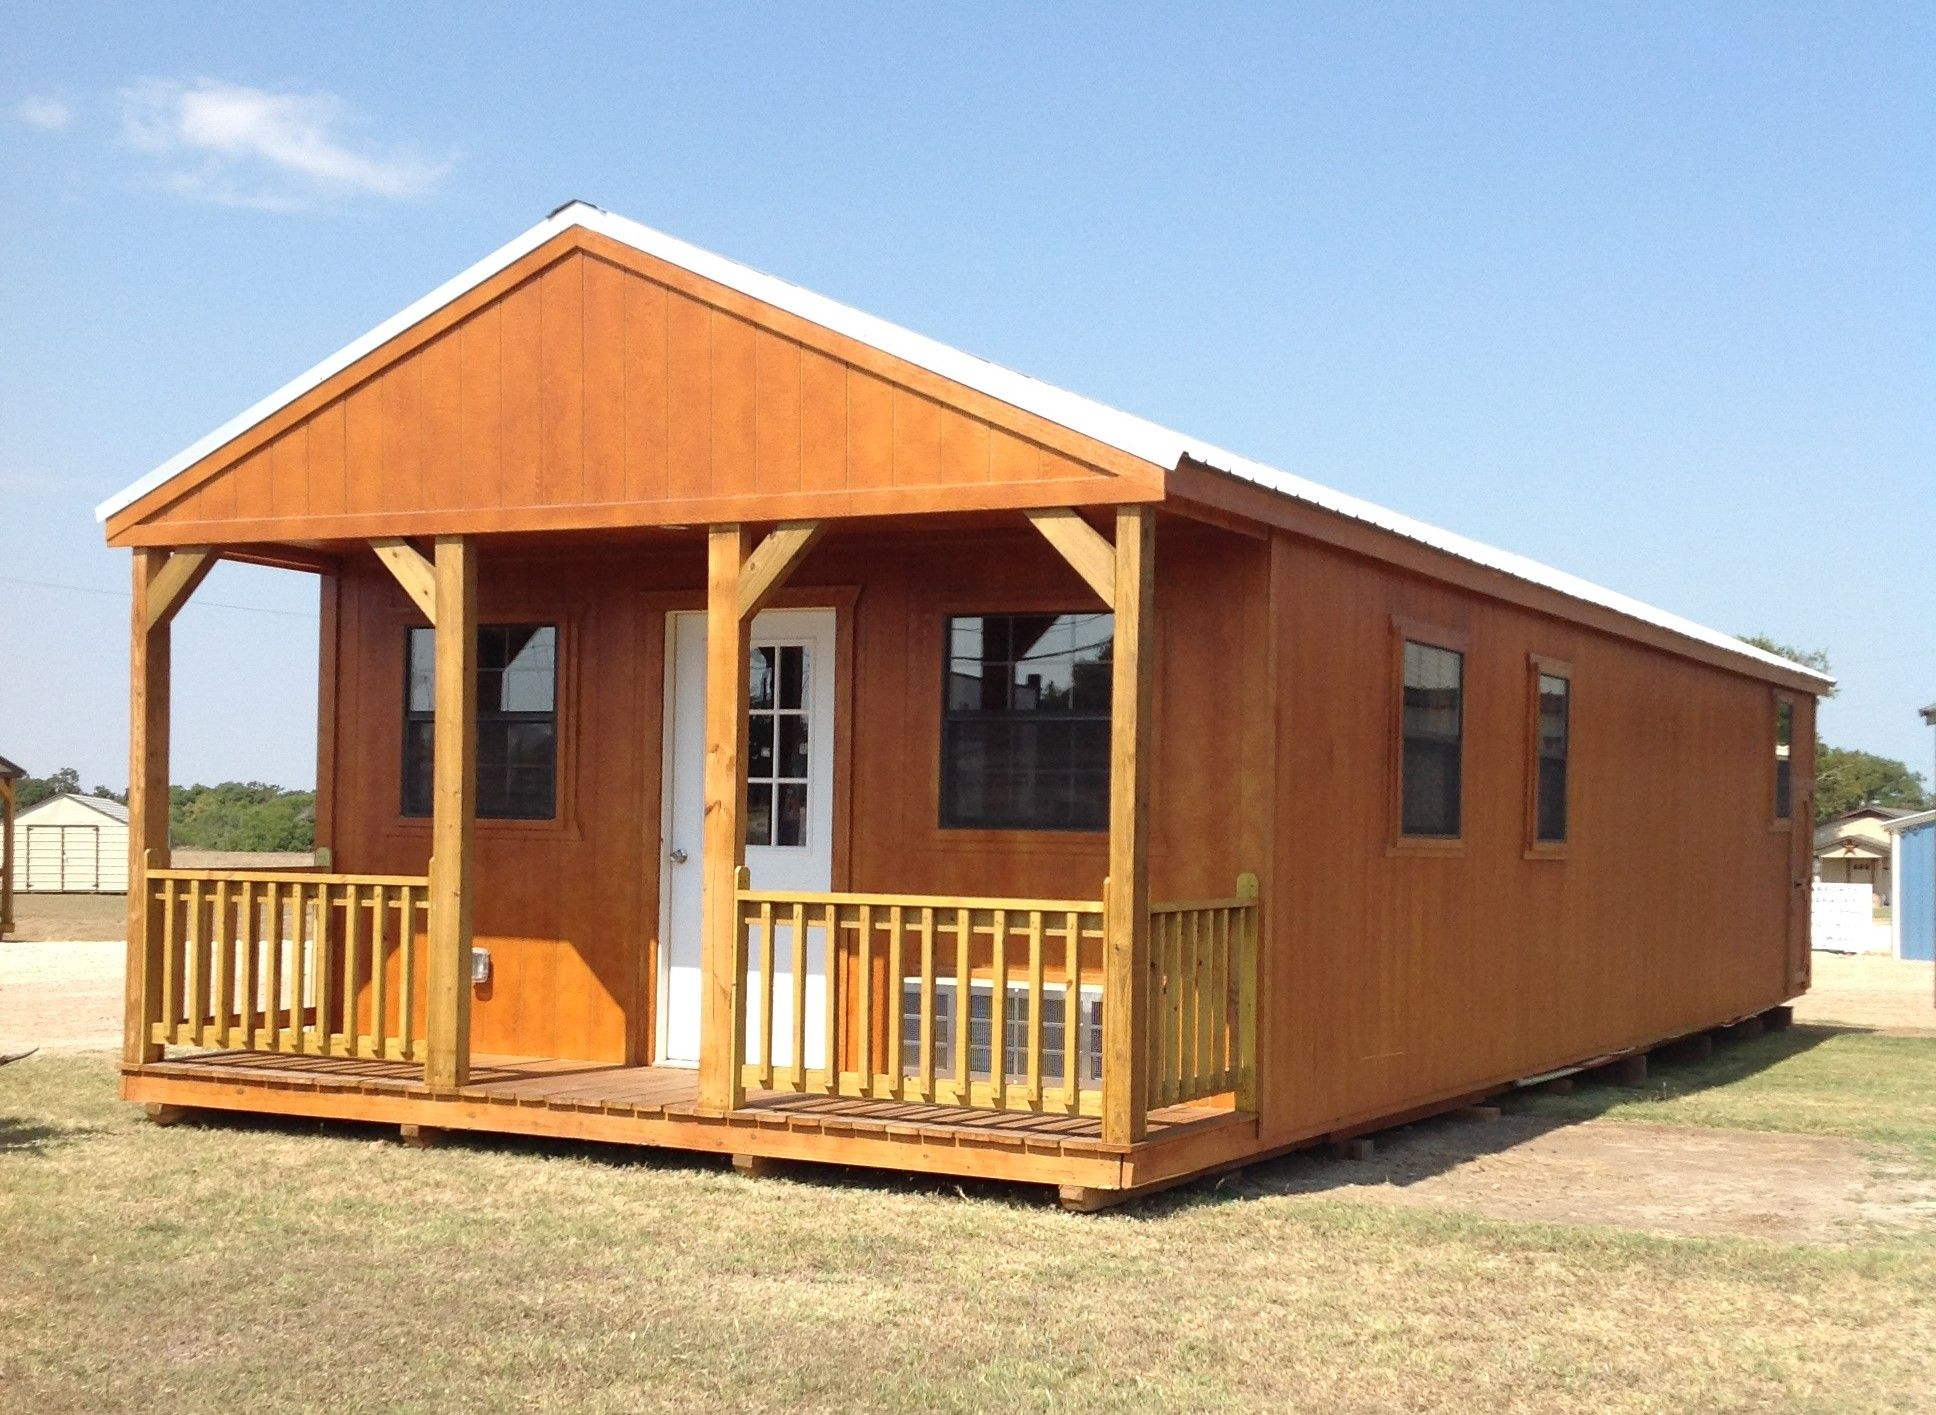 16 X 50 Two Bedroom Cabin 800 Sq Ft Includes All Appliances And You Can Customize All Finishes Shed To Tiny House Portable Buildings Portable Carport